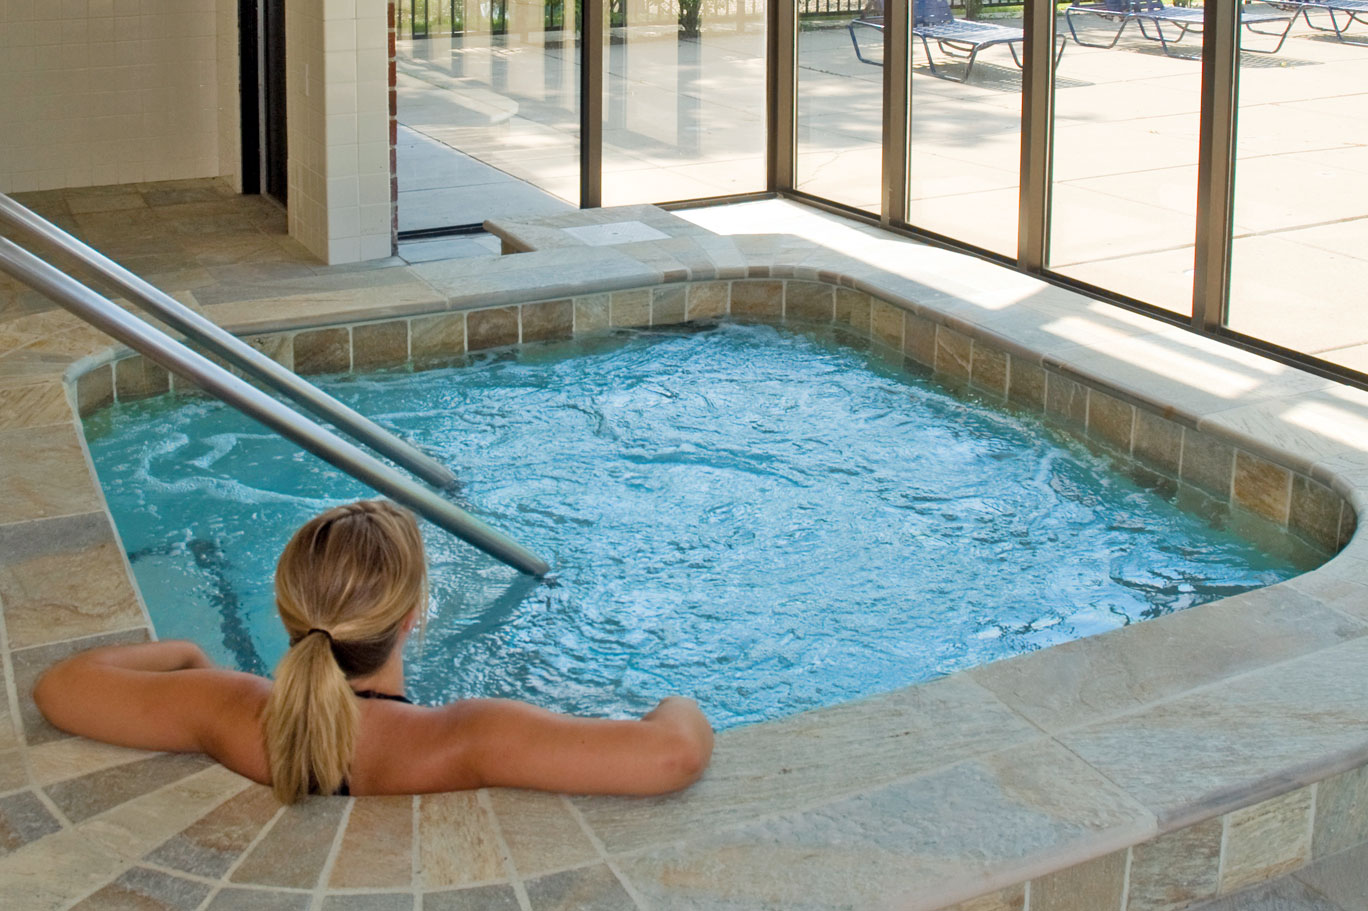 Jacuzzi Pool Design 11 Awesome Jacuzzi Pools For Your Home Awesome 11